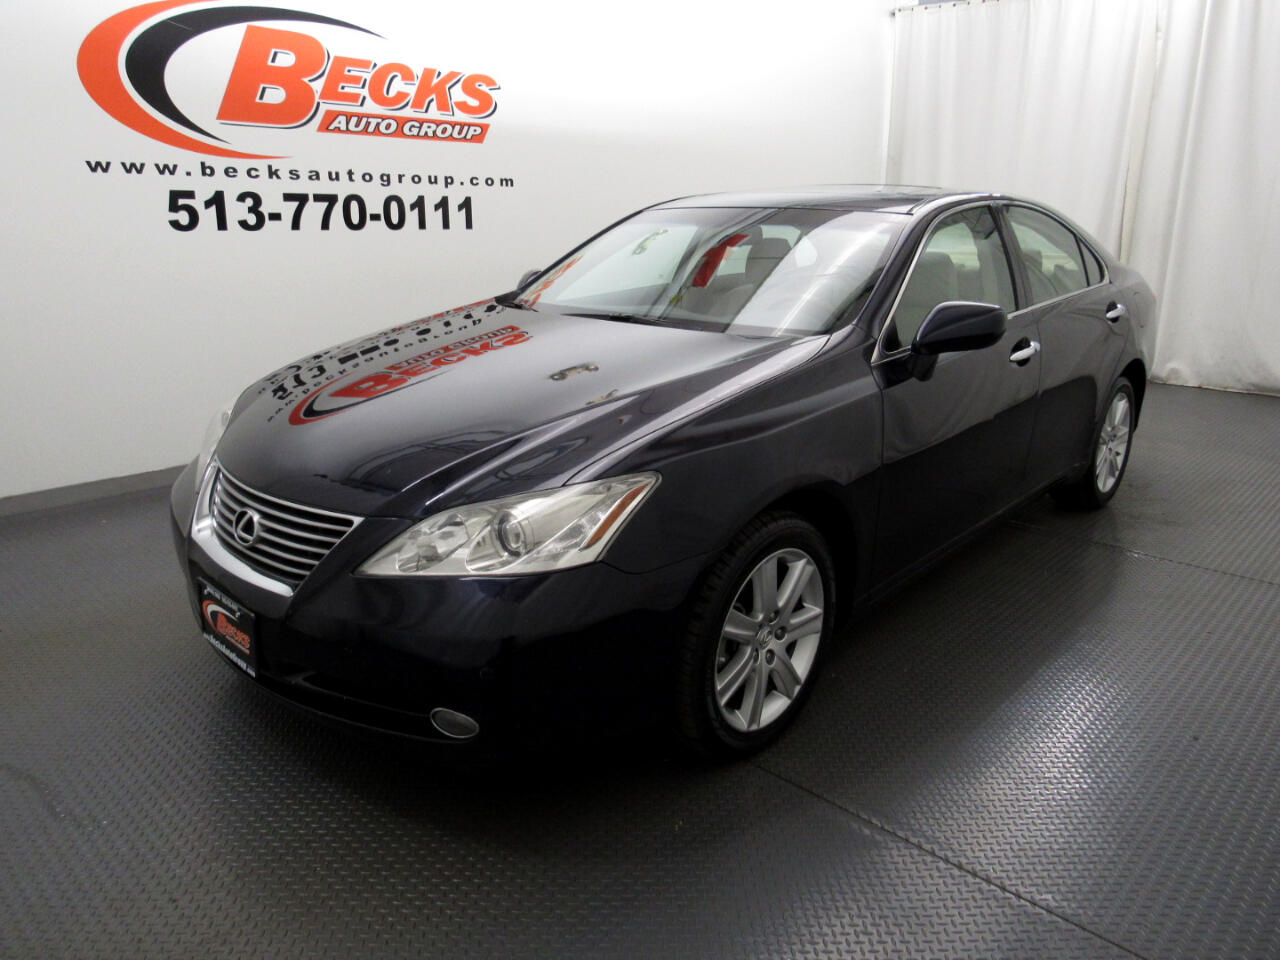 Used Cars For Sale Mason Oh 45040 Becks Auto Group 2005 Lexus 330 Blue Colors 2008 Es 350 4dr Sdn